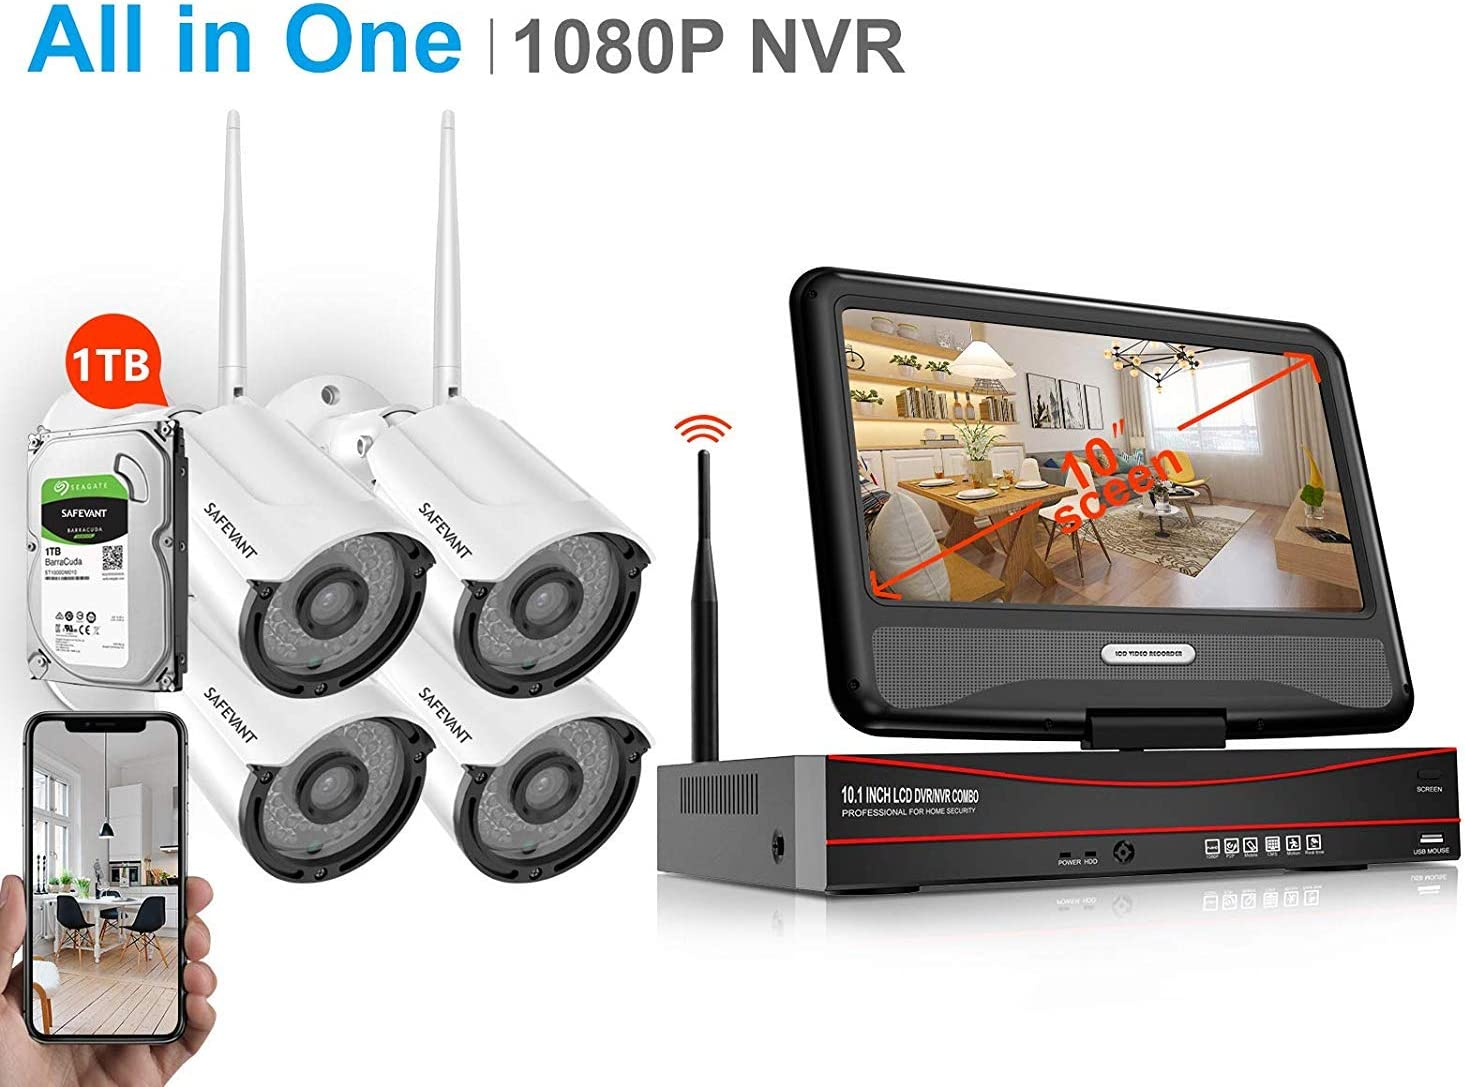 1080P Security Camera System Wireless with Monitor,SAFEVANT 8CH All in One NVR Kits with 4pcs 960p Indoor Outdoor IP Cameras with Night Vision,1TB Hard Drive for 7 24 Recording